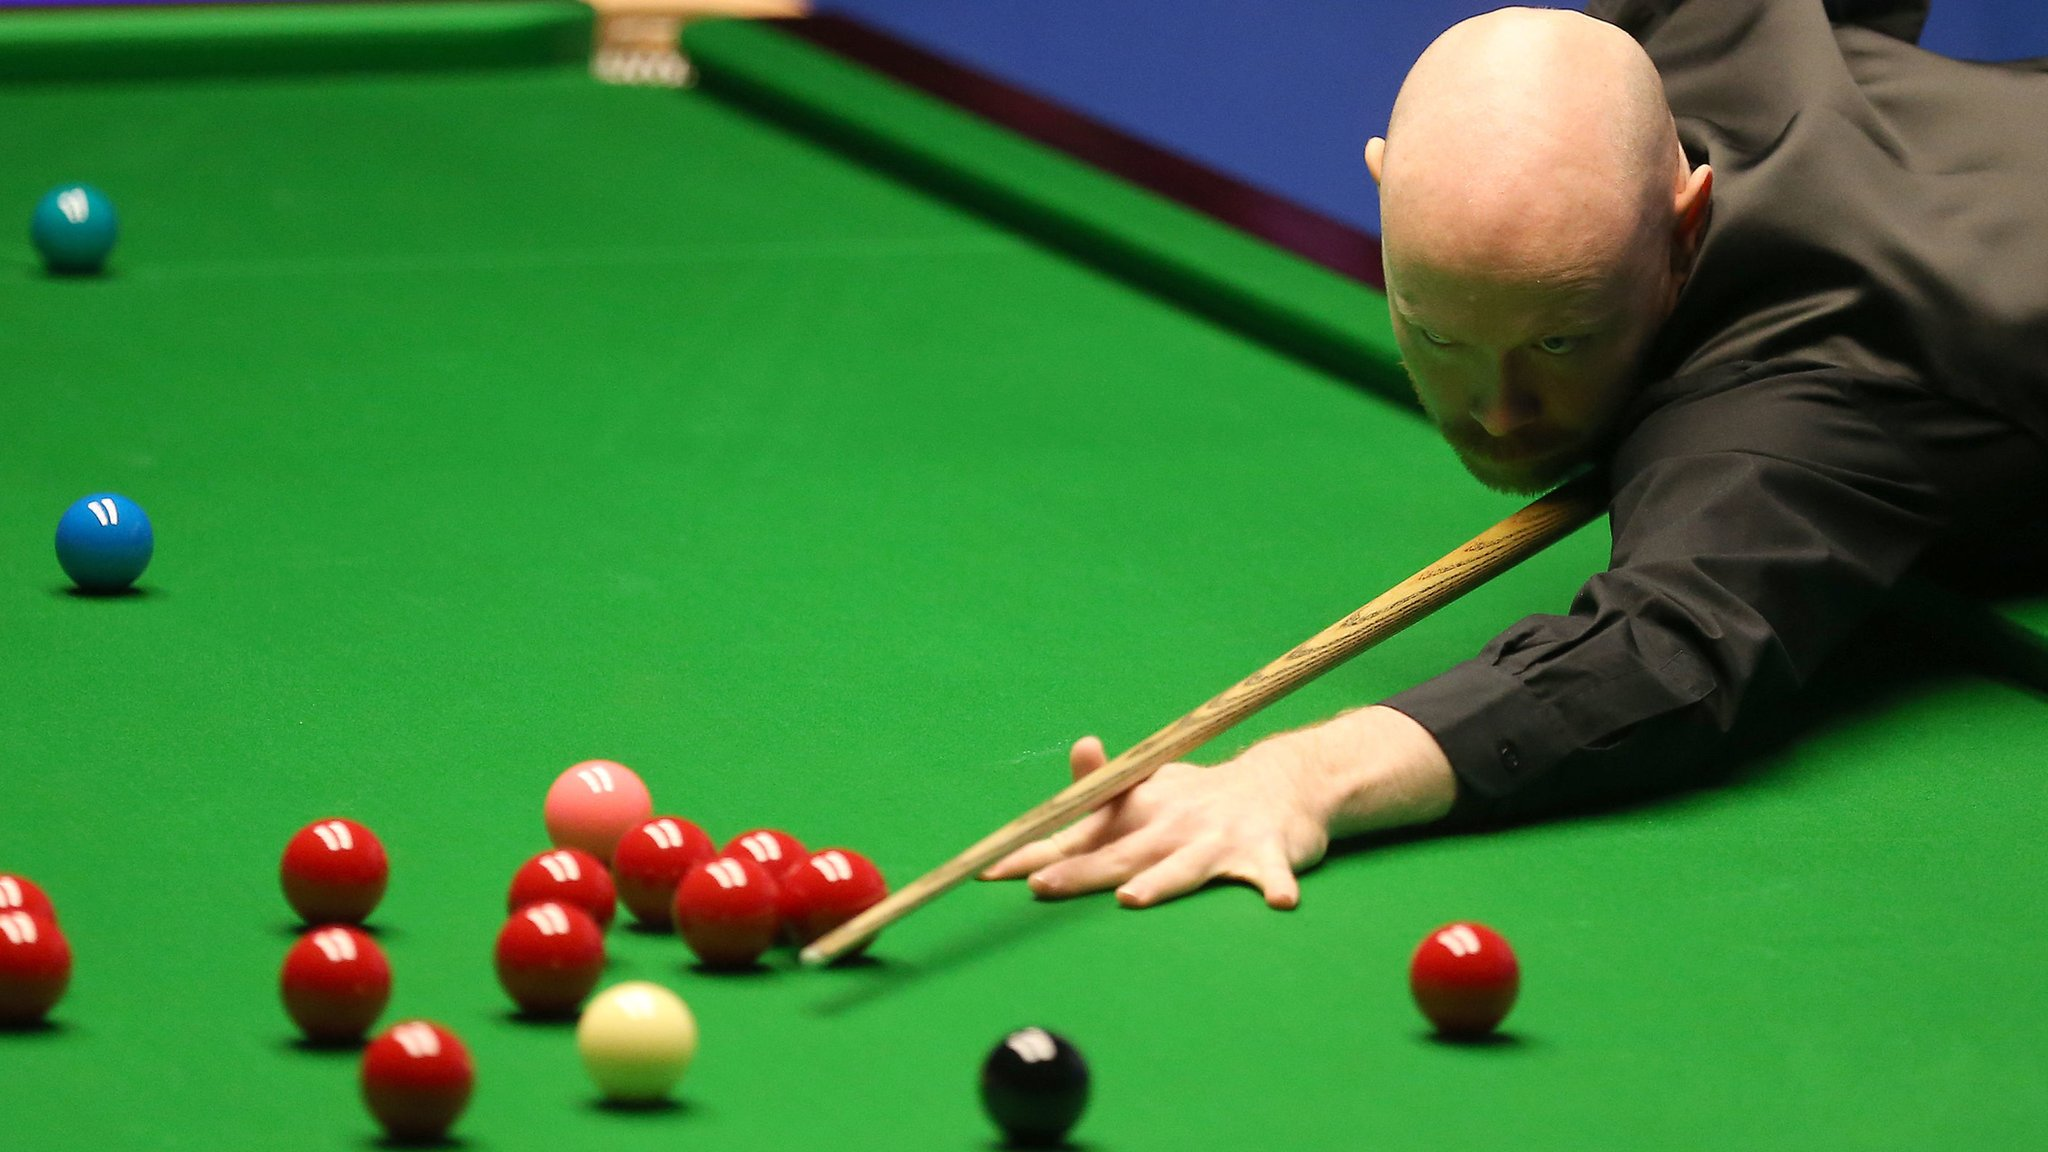 'That wasn't snooker' - Wilson prevails in record 79-minute frame